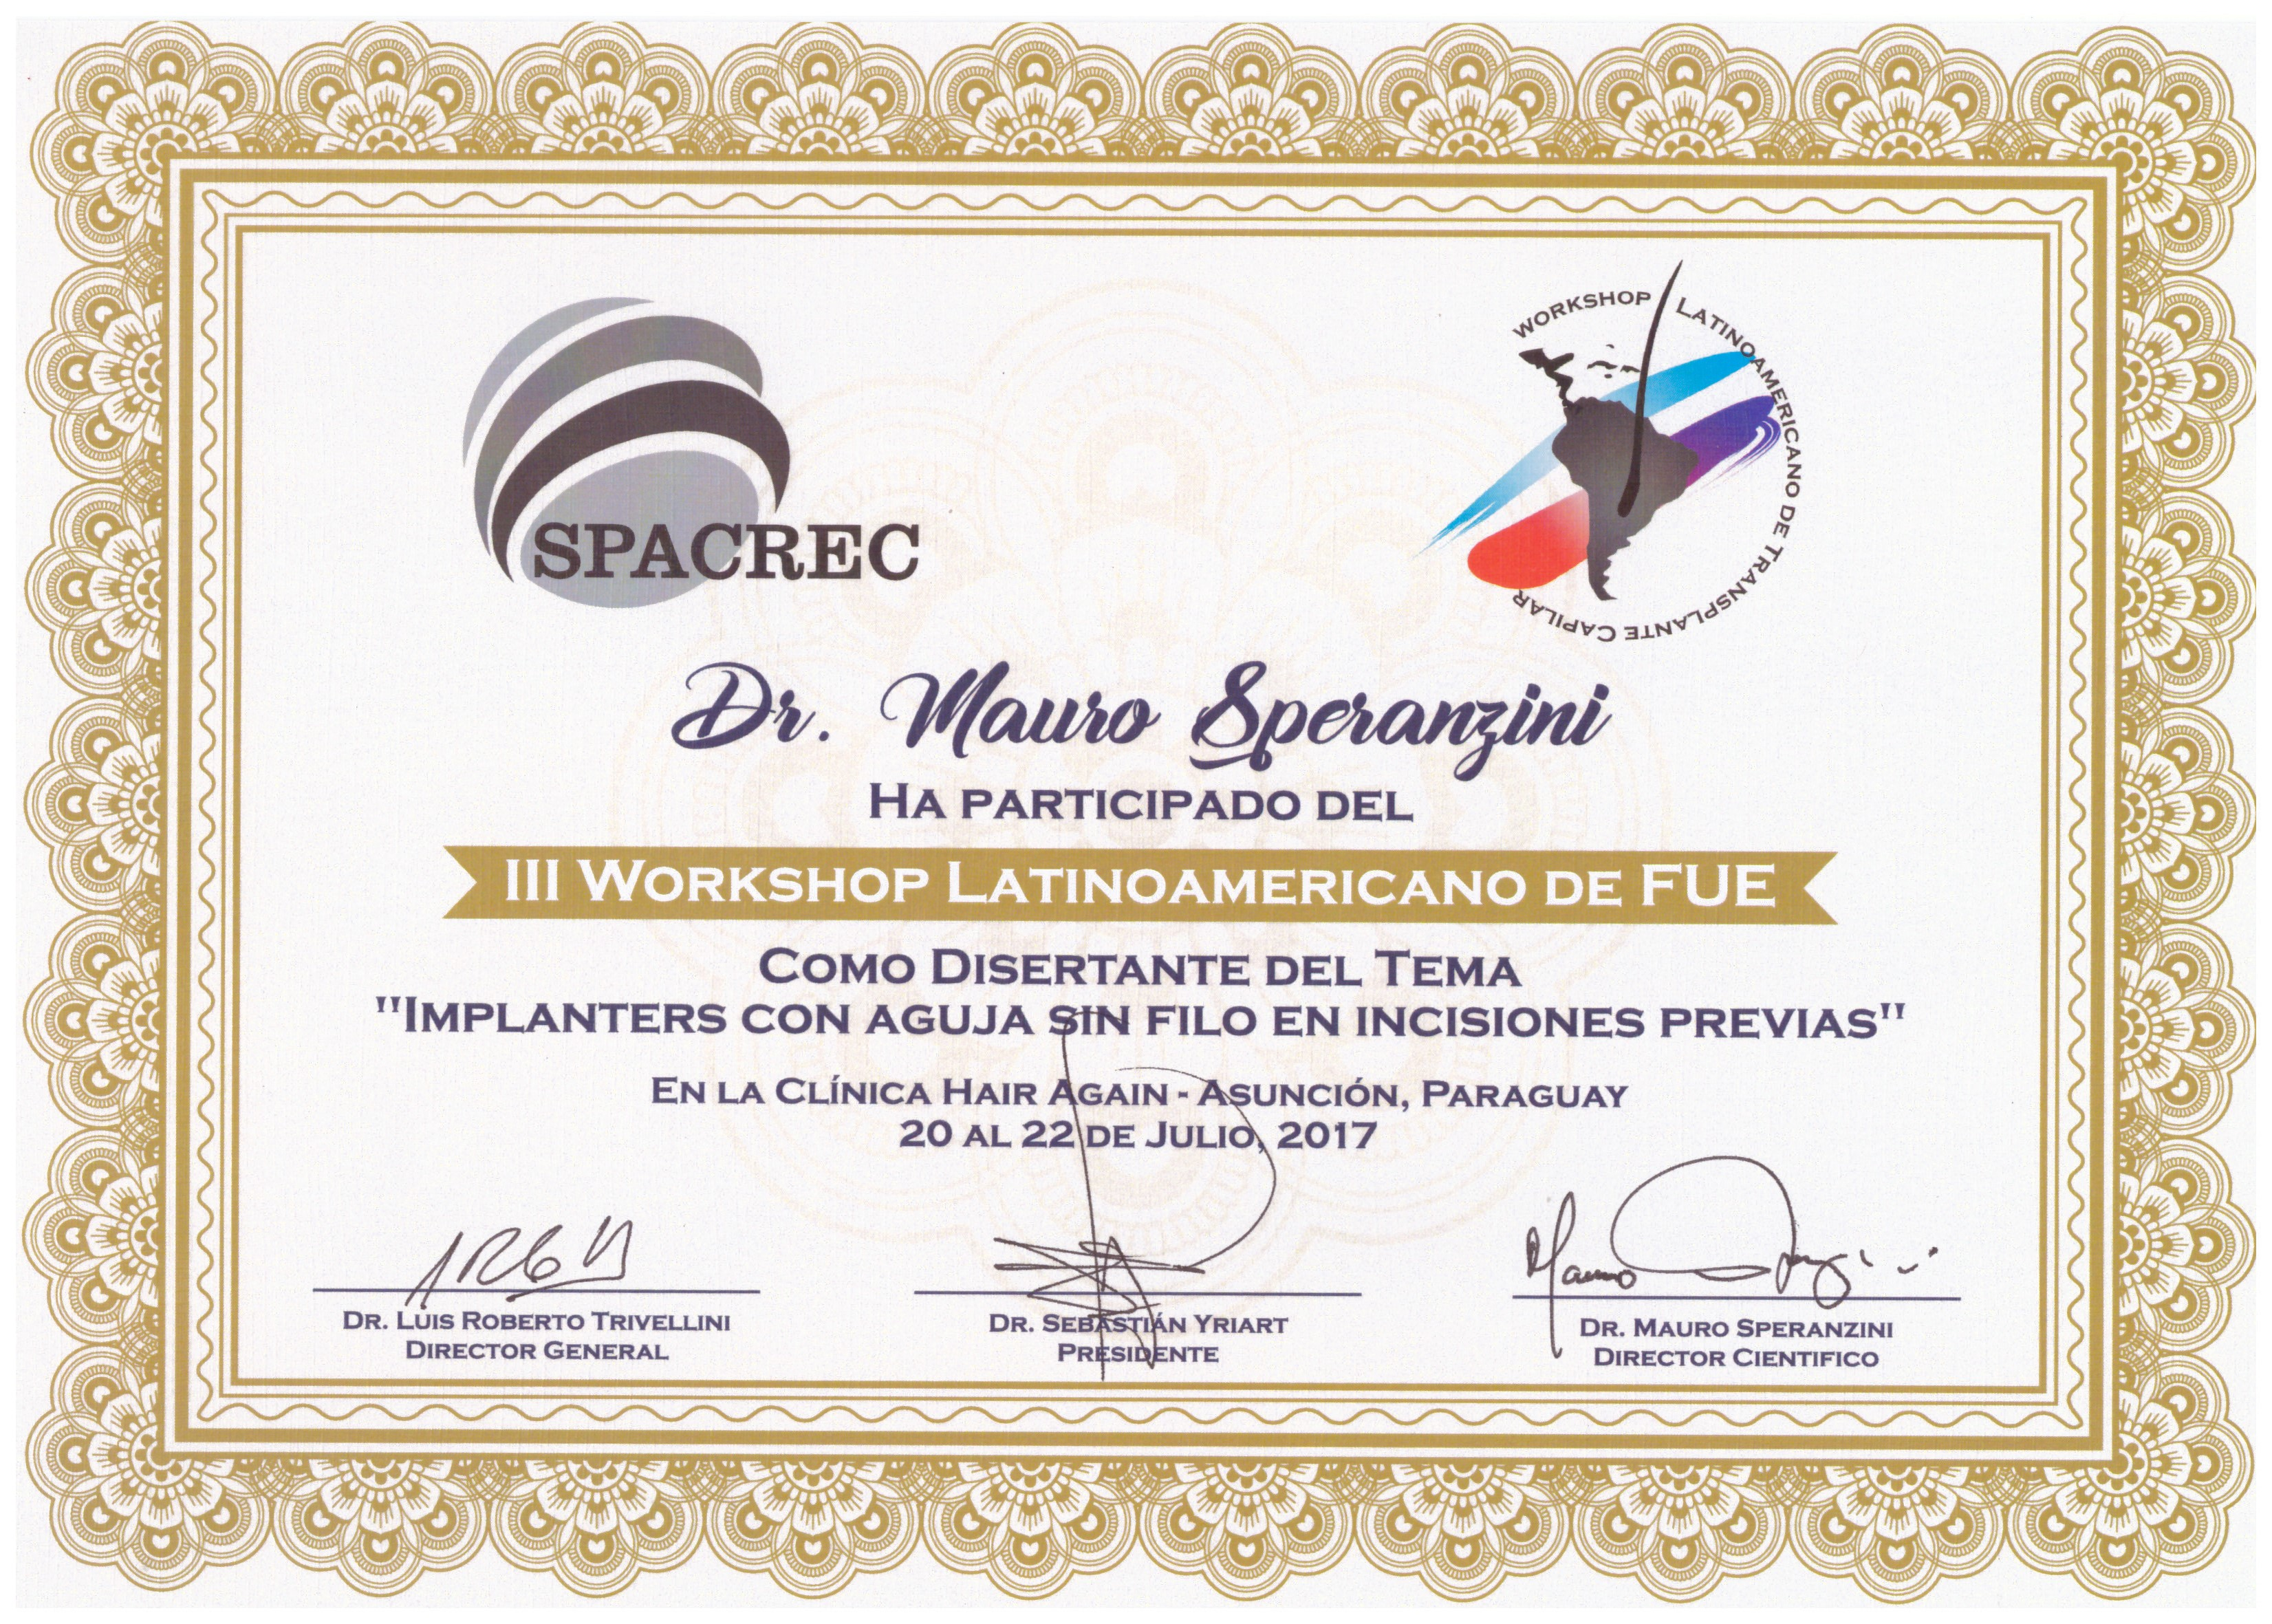 certificado do dr. mauro speranzini